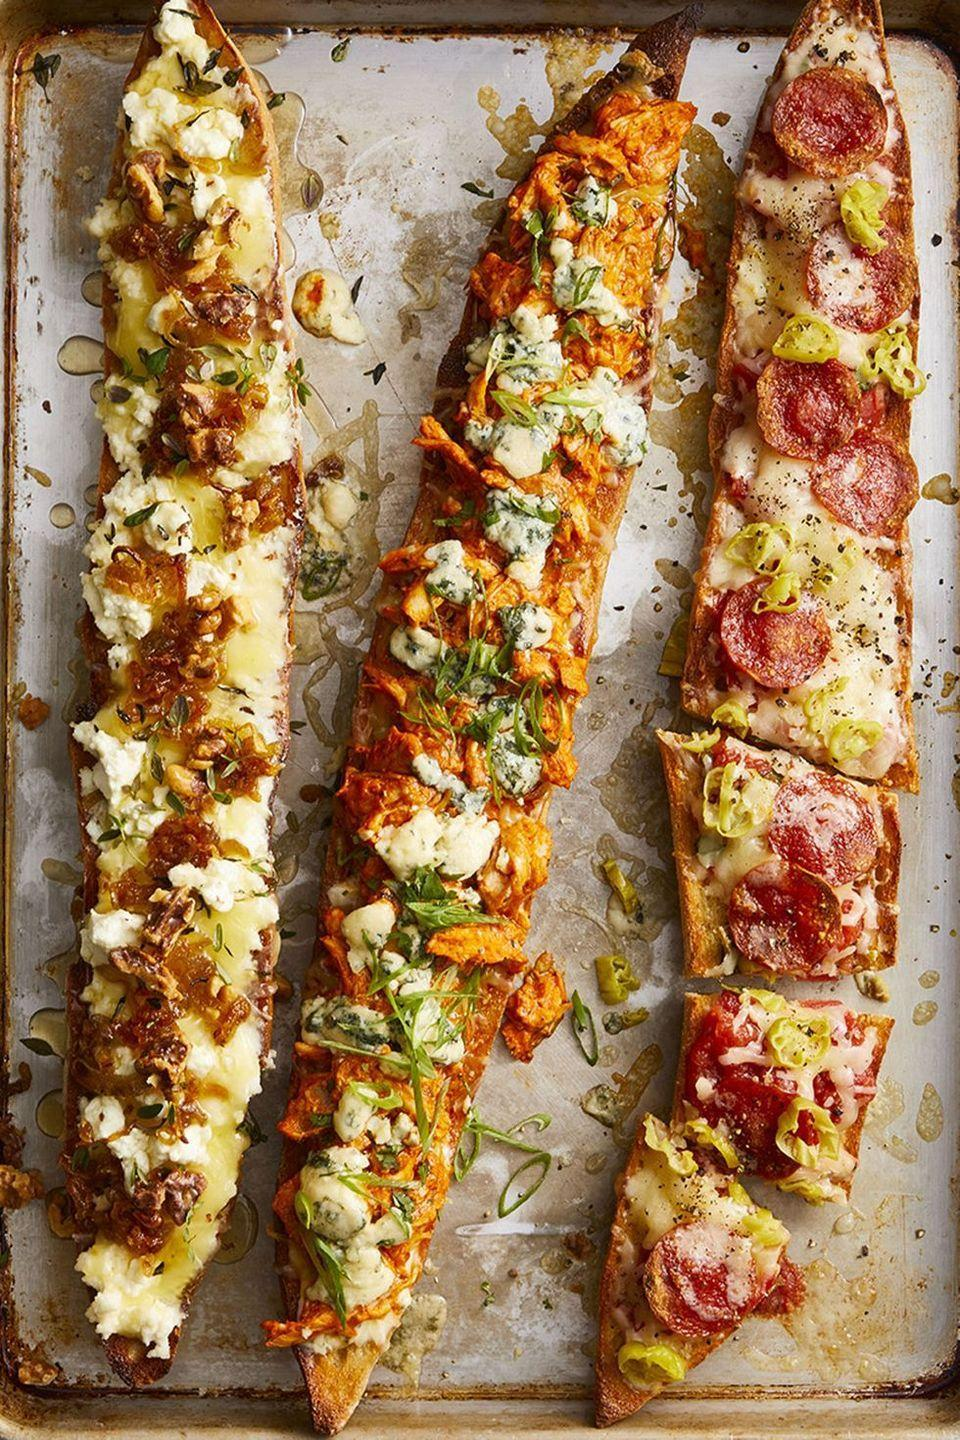 """<p>Baguette is an epic vehicle for all of the ingredients in your fridge (plus plenty of cheese!).</p><p><em><a href=""""https://www.goodhousekeeping.com/food-recipes/easy/a47670/baguette-pizza-recipe/"""" rel=""""nofollow noopener"""" target=""""_blank"""" data-ylk=""""slk:Get the recipe for Buffalo Chicken Baguette Pizzas »"""" class=""""link rapid-noclick-resp"""">Get the recipe for Buffalo Chicken Baguette Pizzas »</a></em></p>"""